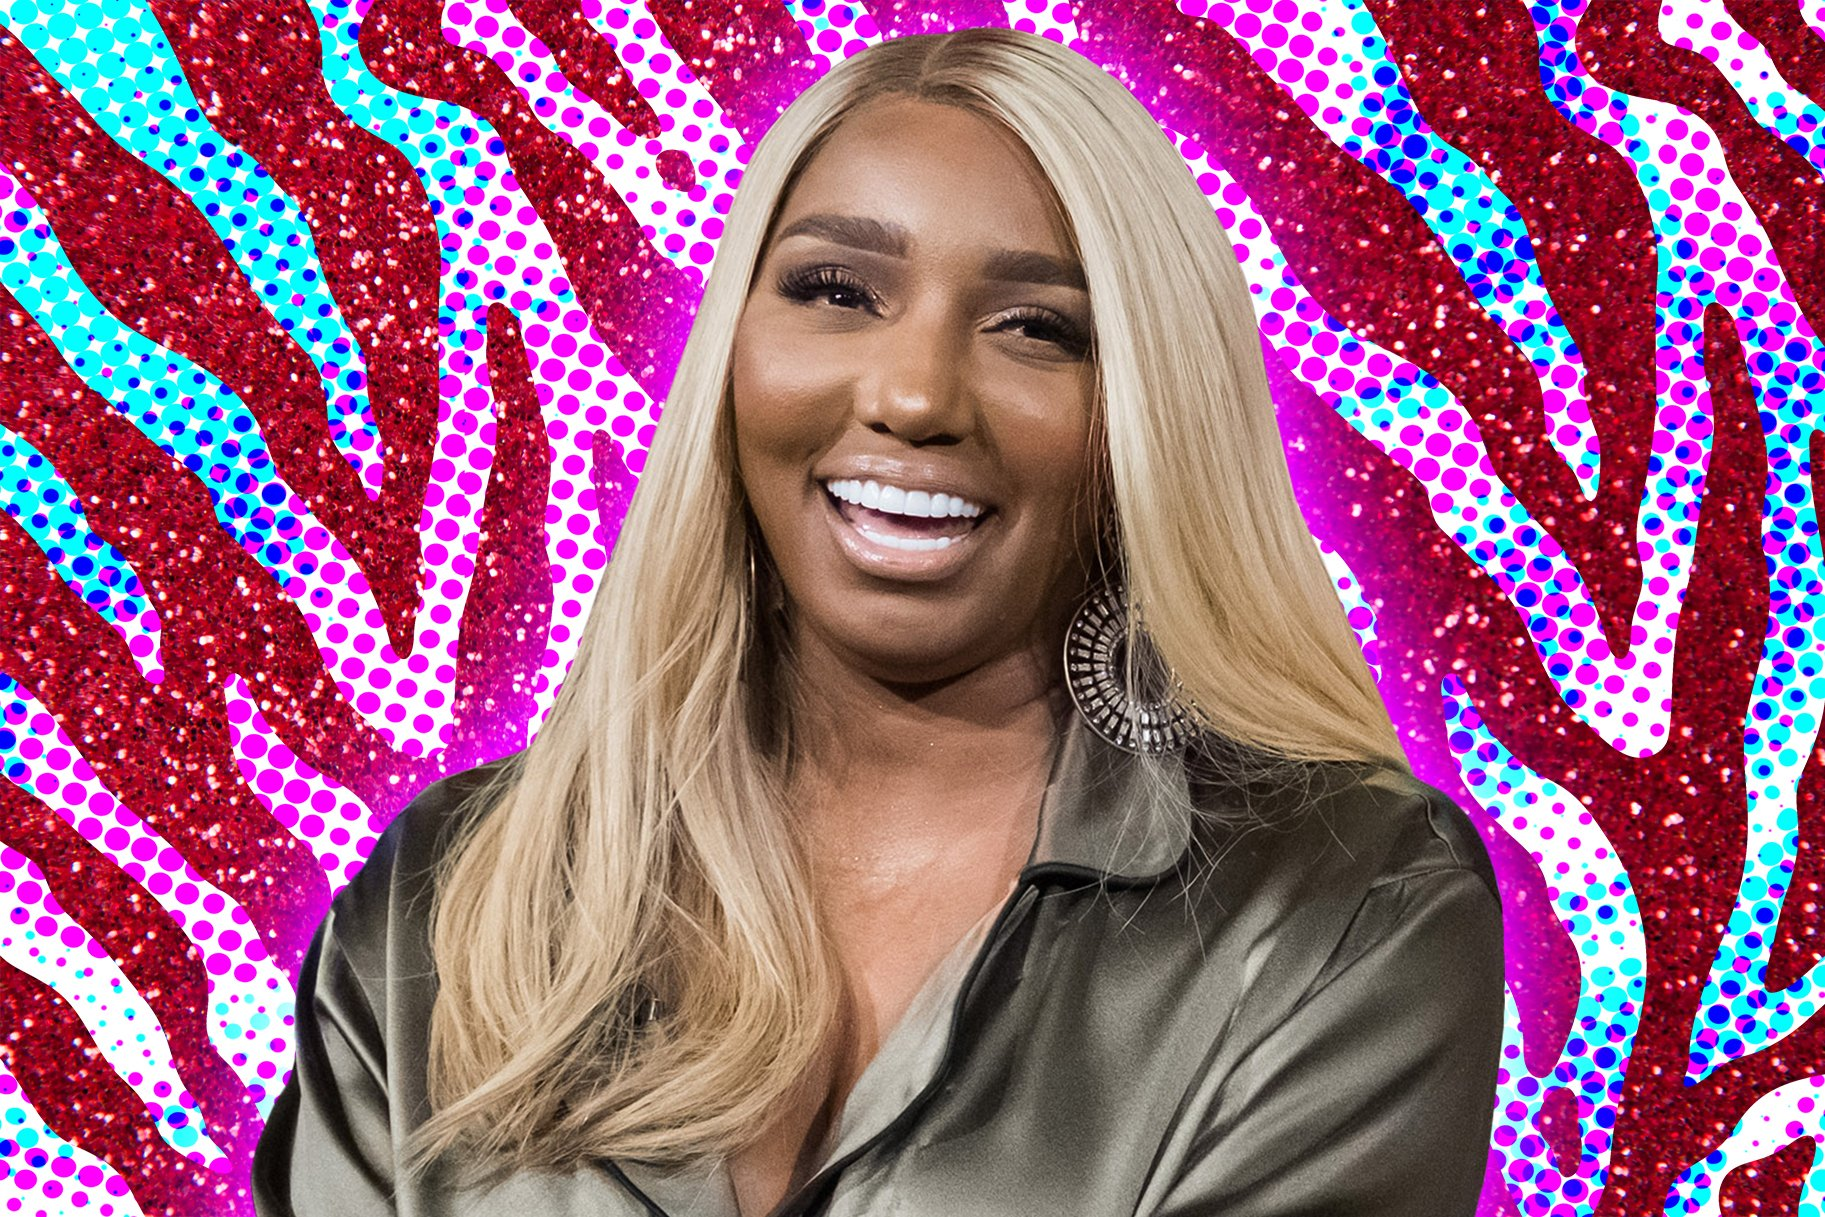 NeNe Leakes' Video Impresses Fans – Check Out What She Did